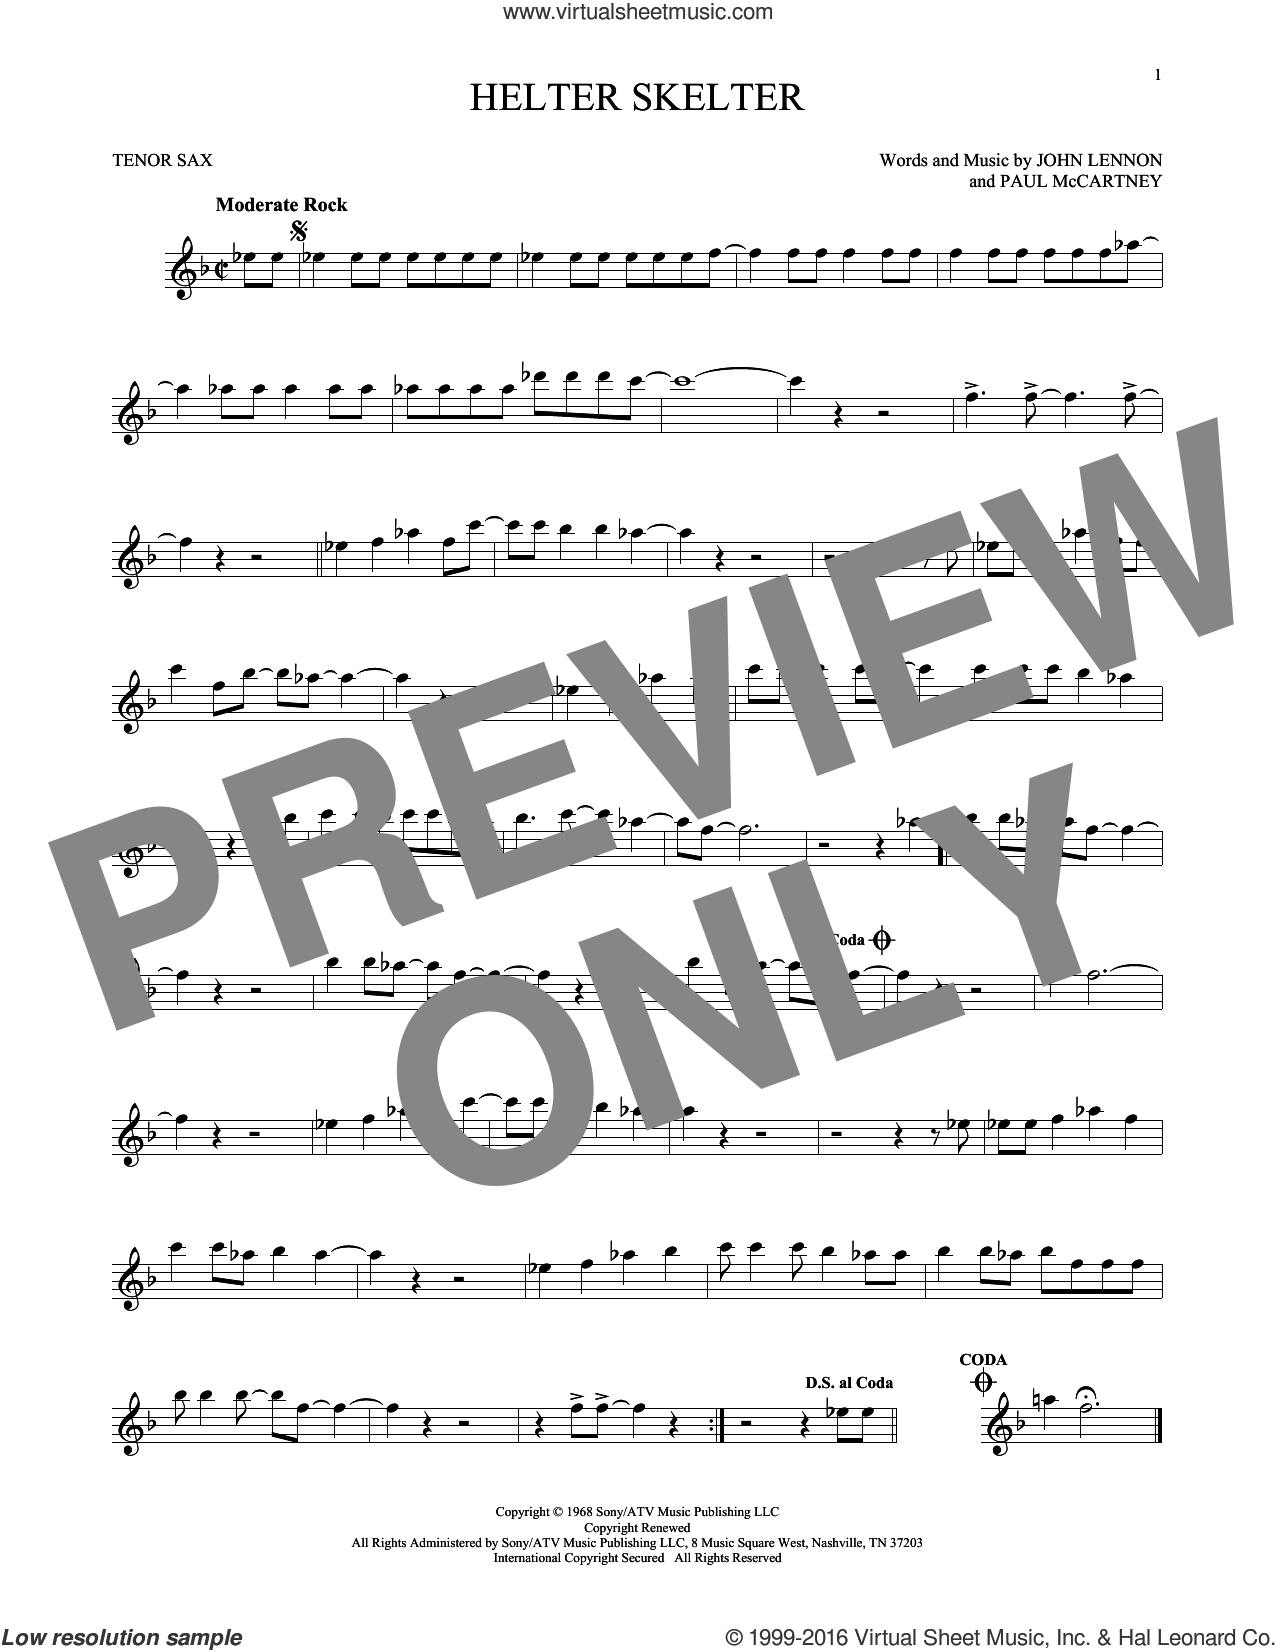 Helter Skelter sheet music for tenor saxophone solo by The Beatles, John Lennon and Paul McCartney, intermediate skill level